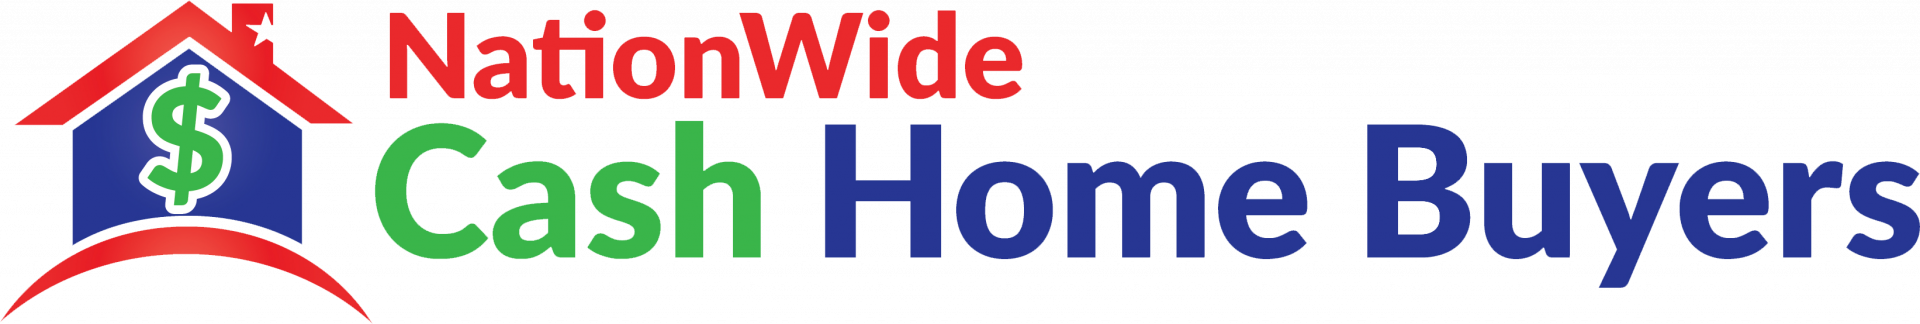 Nationwide Cash Home Buyers  logo